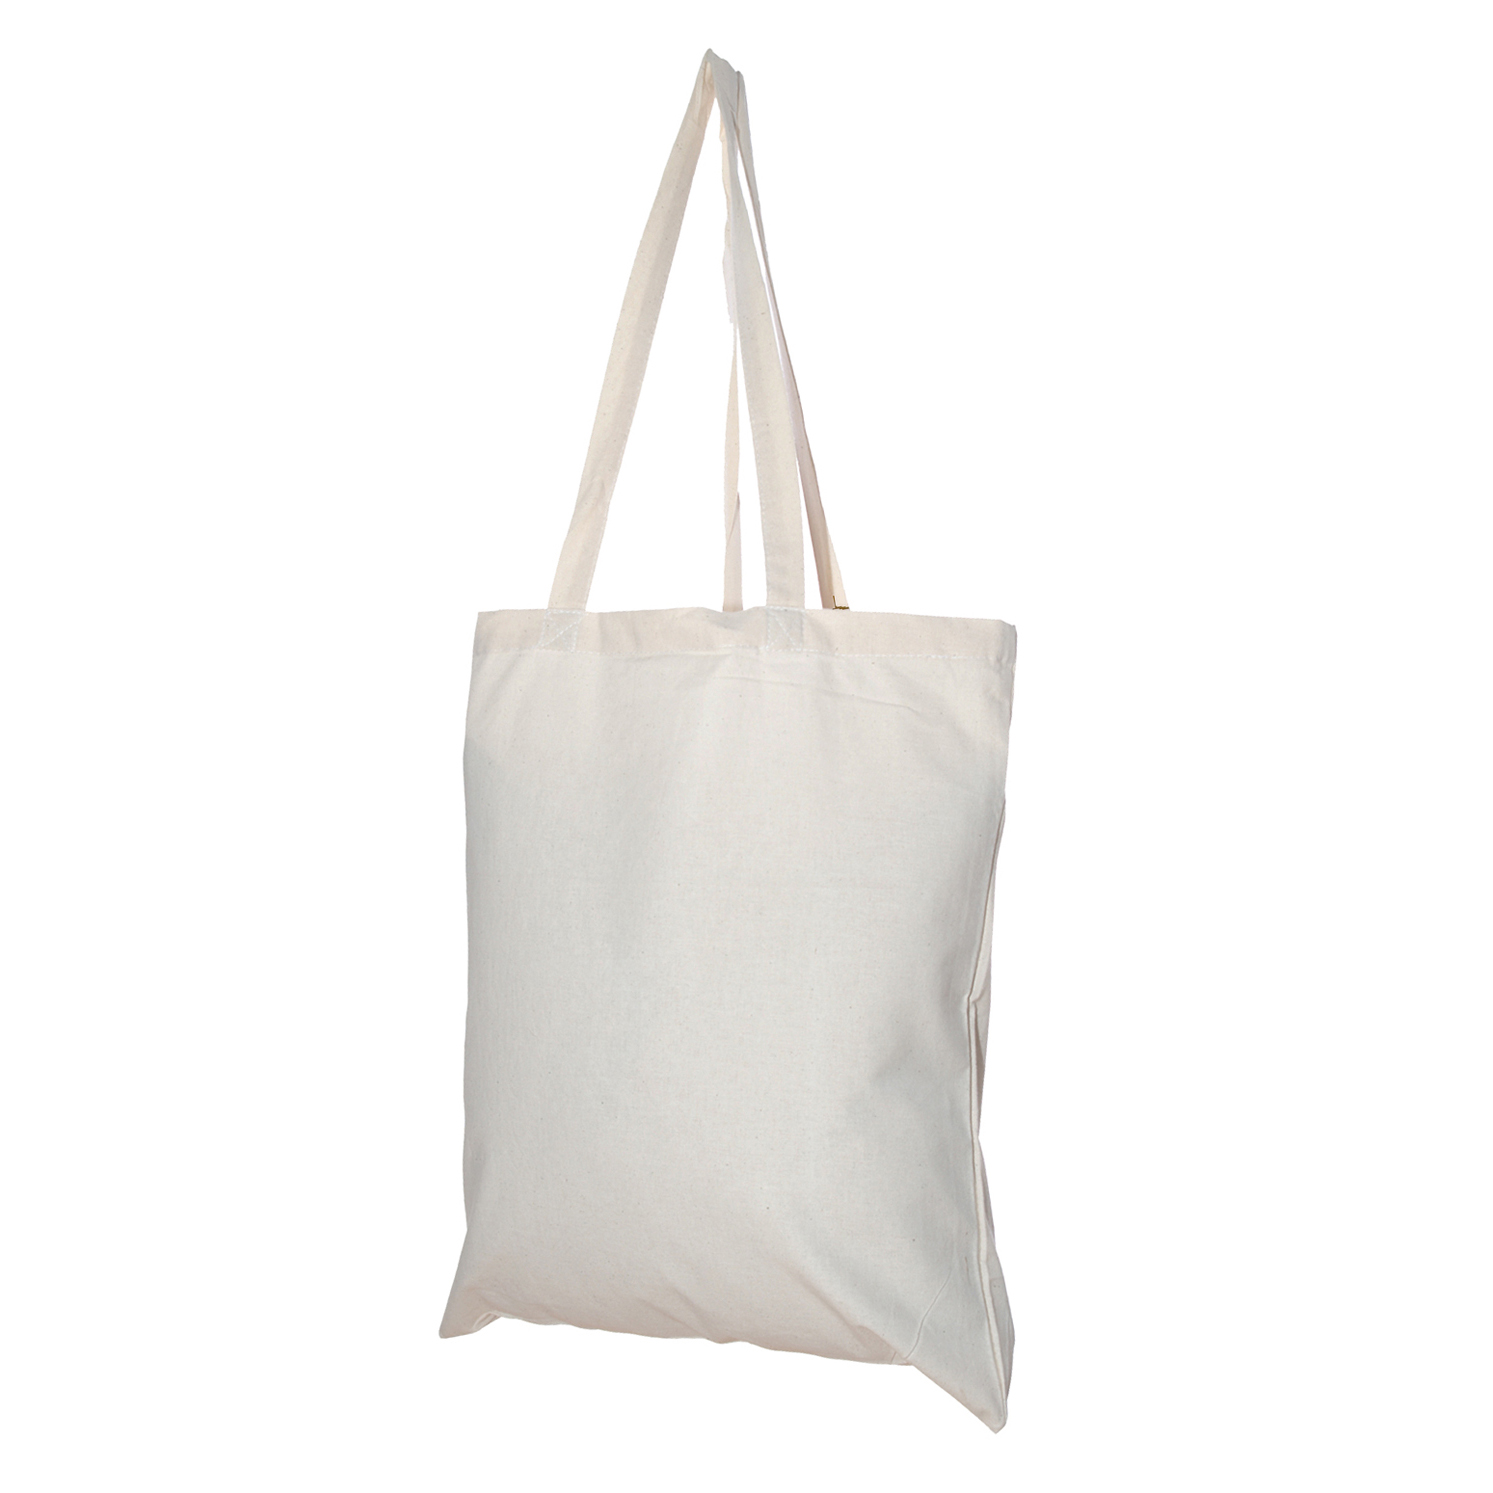 Budget 5oz Cotton Shopper